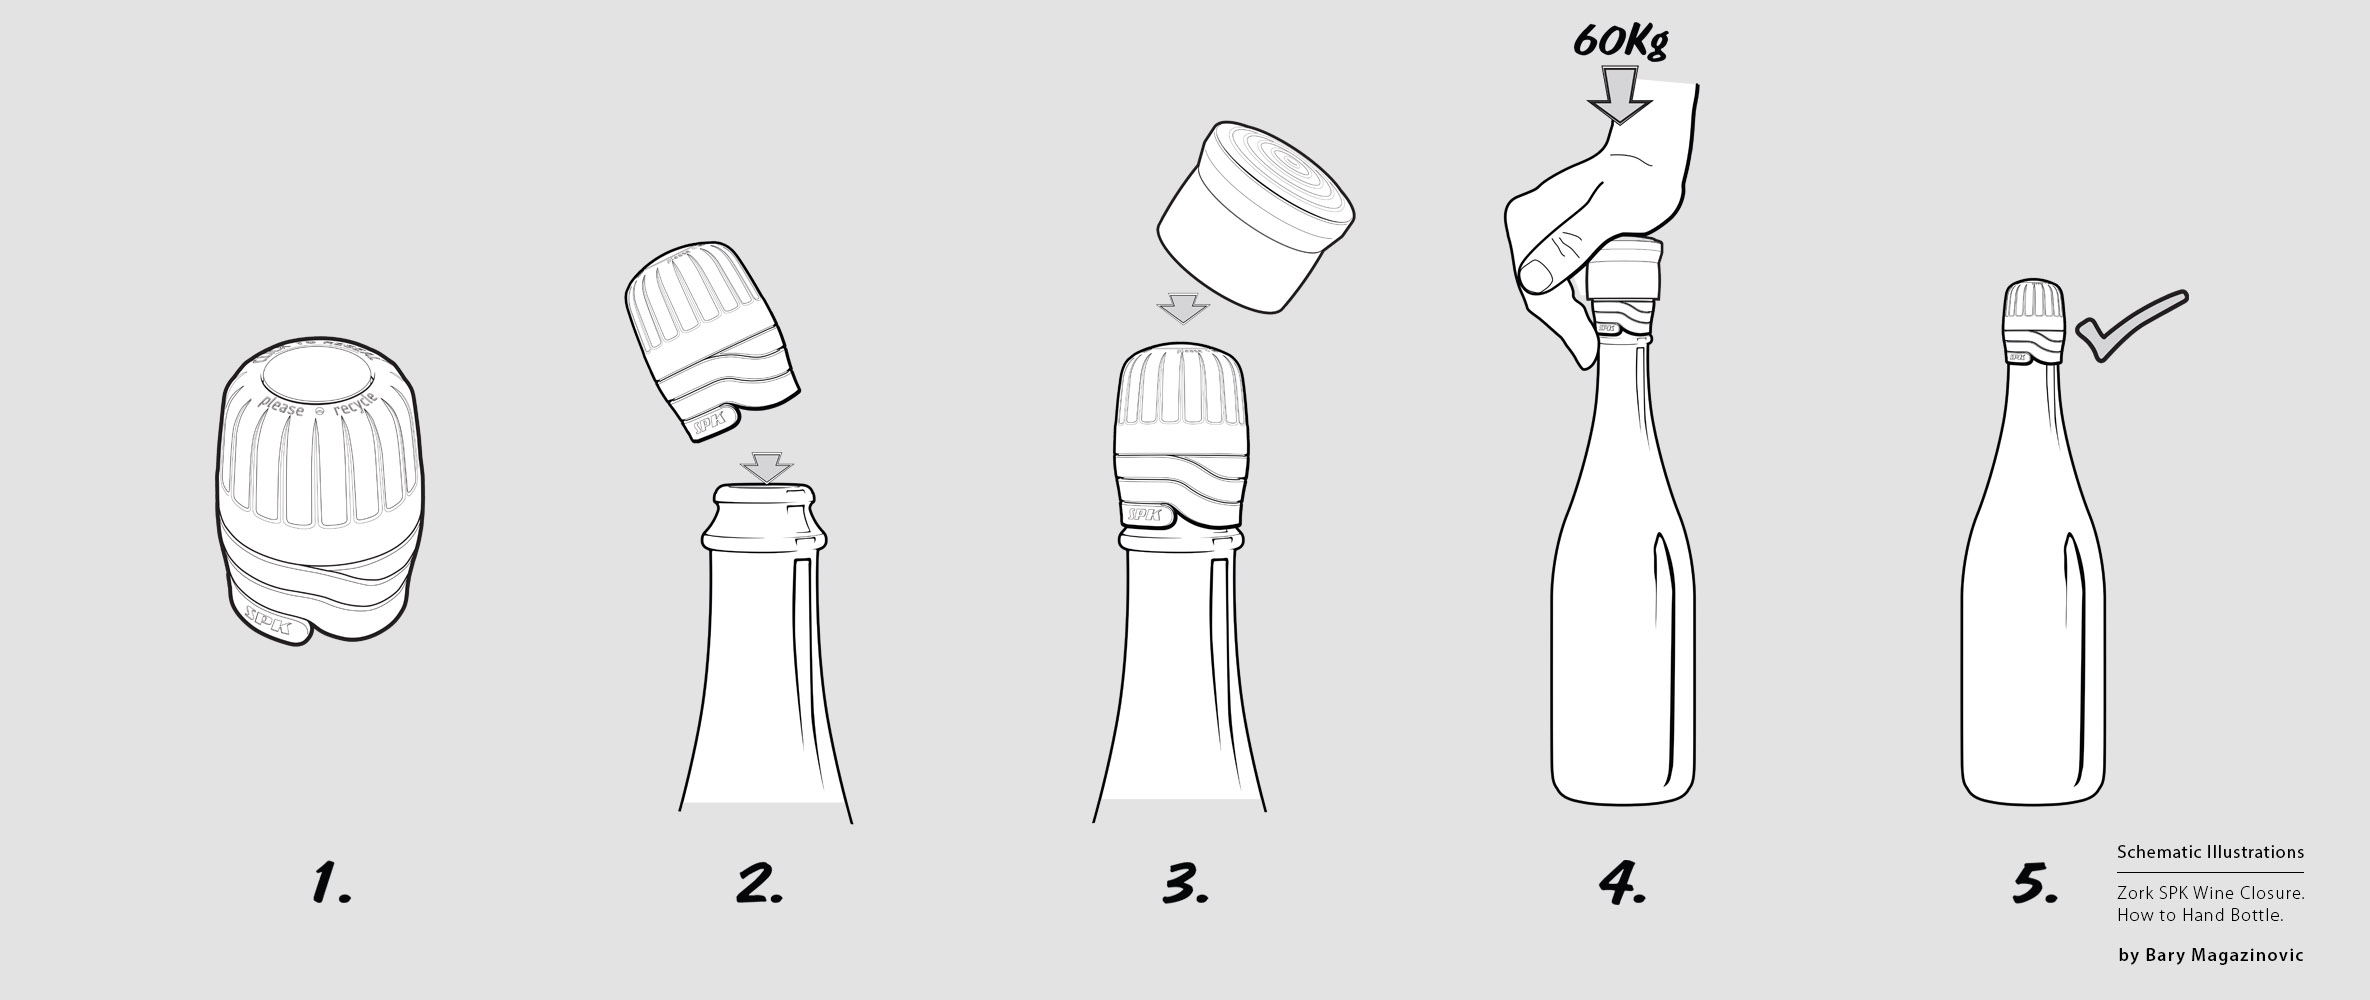 Australian Product Design Industrial Design SPK sparkling Champagne how to hand bottle icons Gancia by Barry Magazinovic